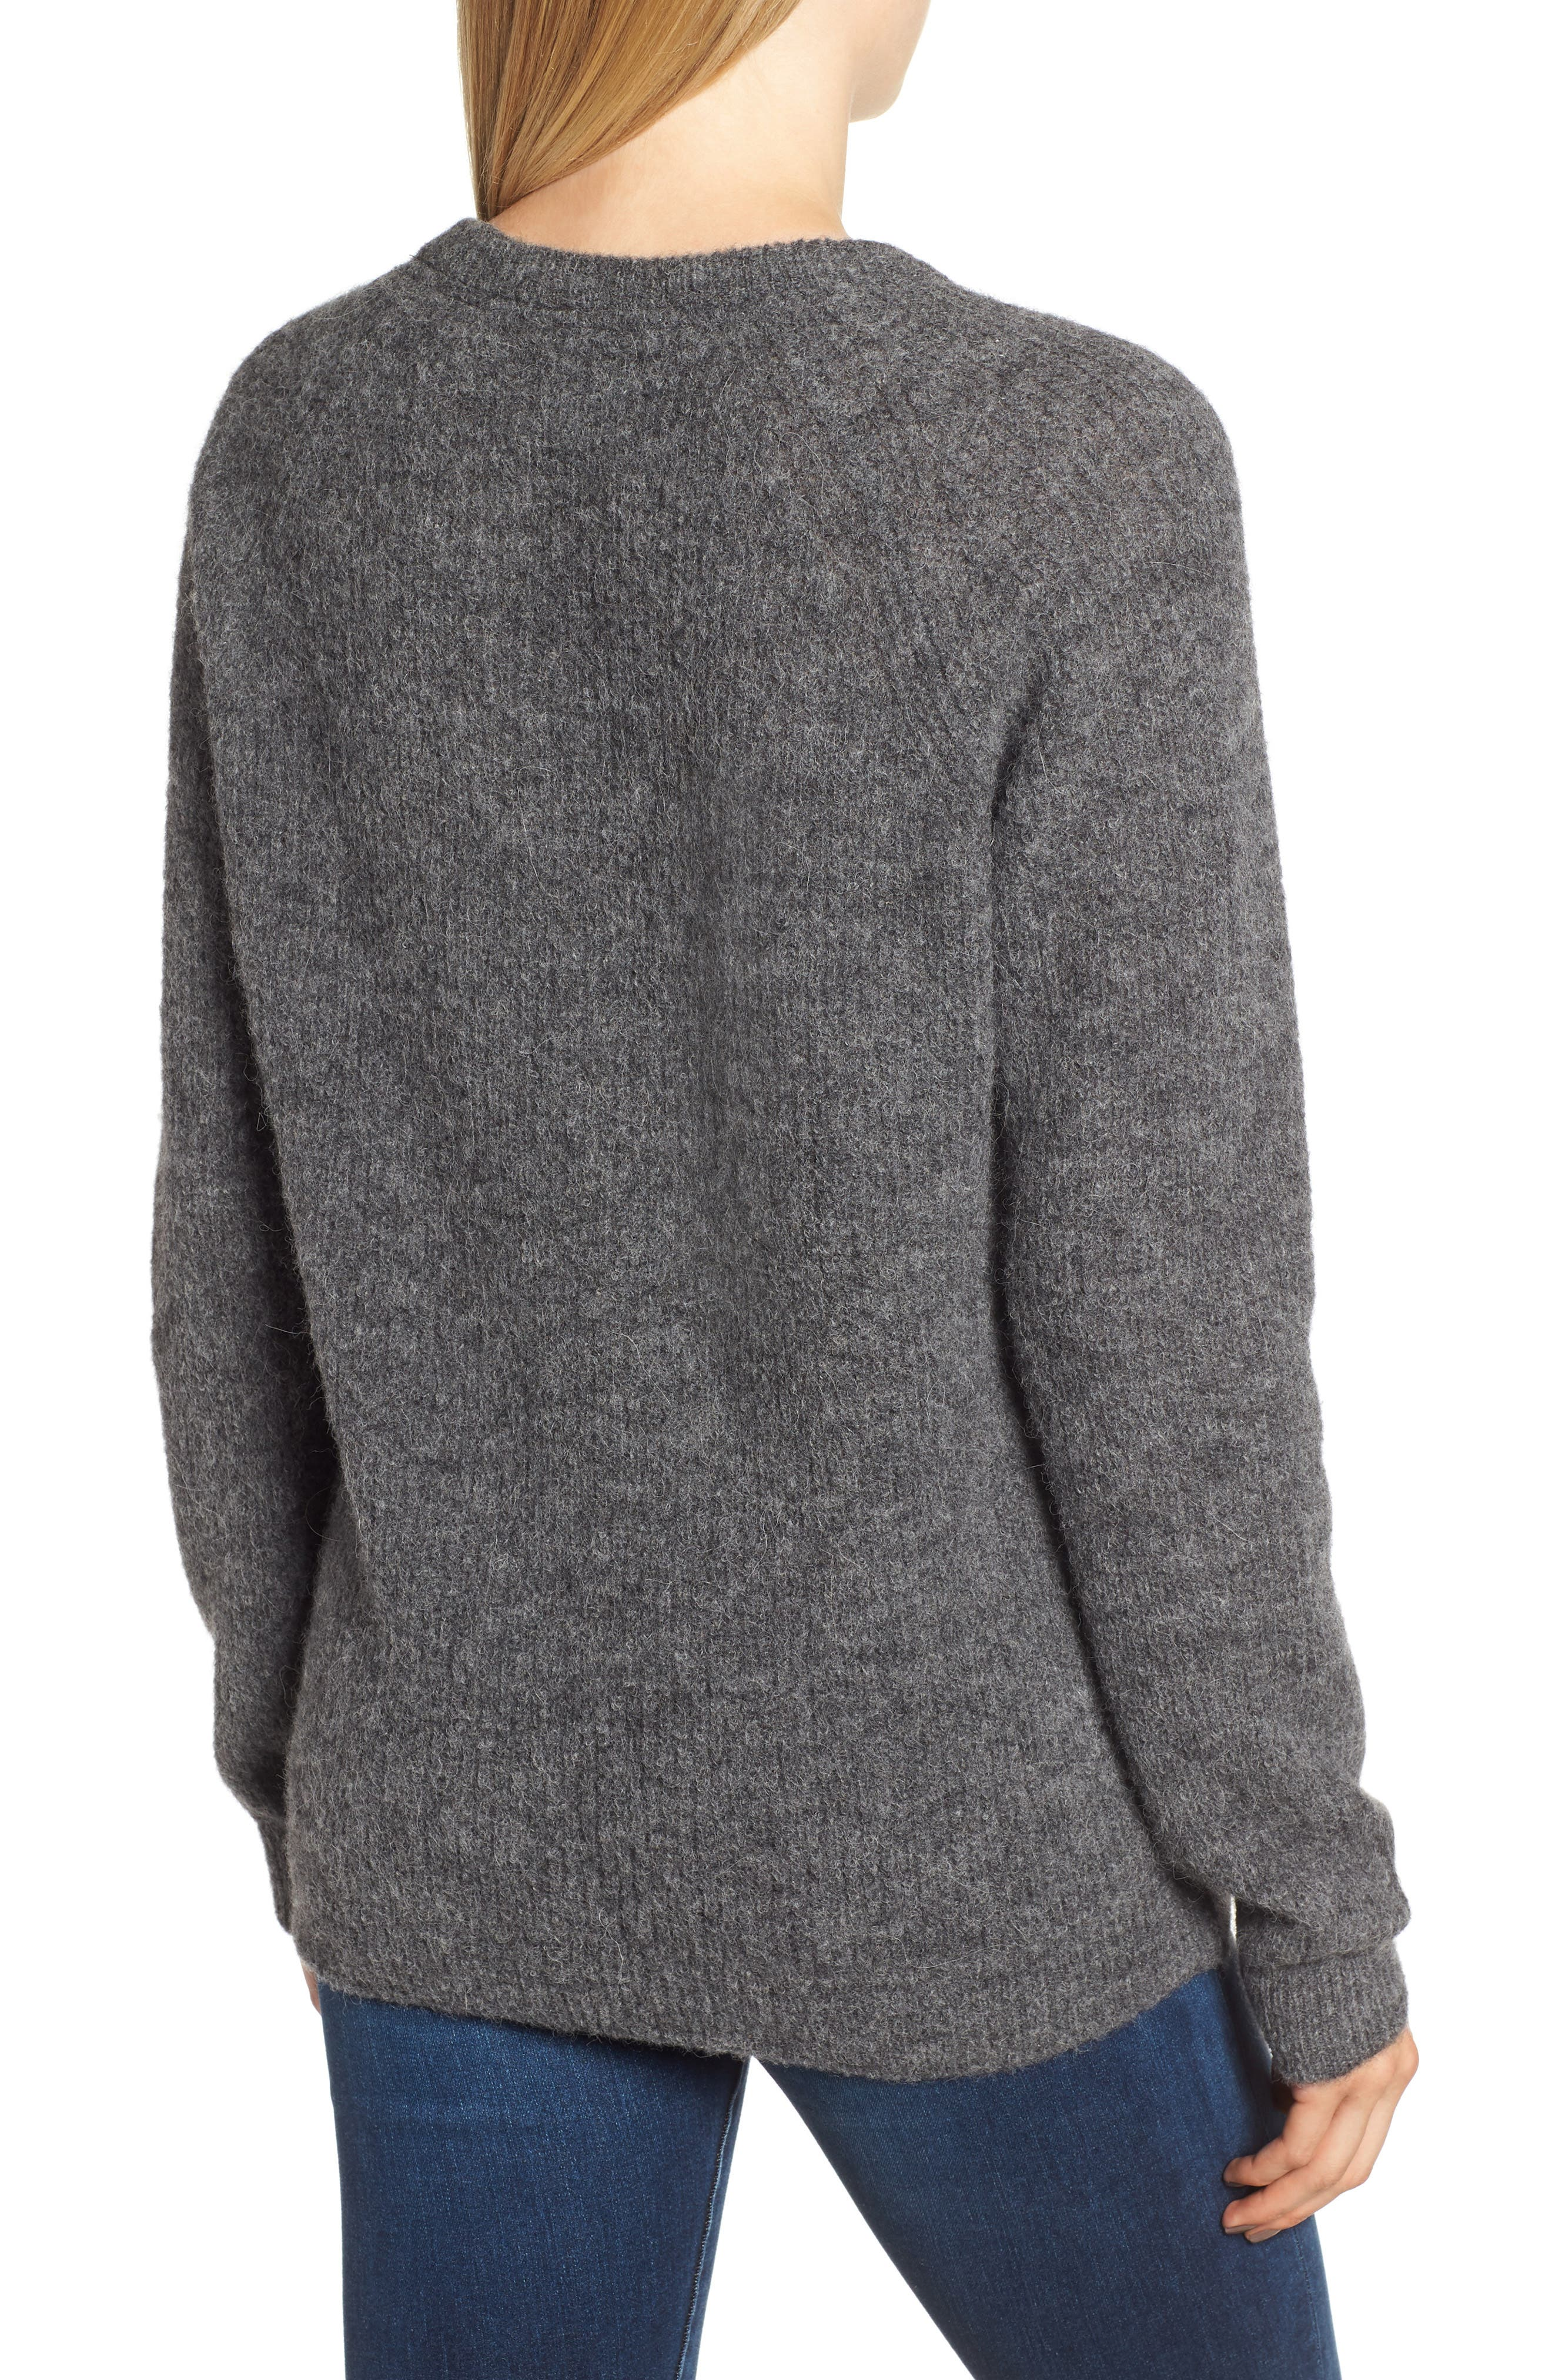 Olivia Crewneck Sweater,                             Alternate thumbnail 2, color,                             DARK GREY MARL